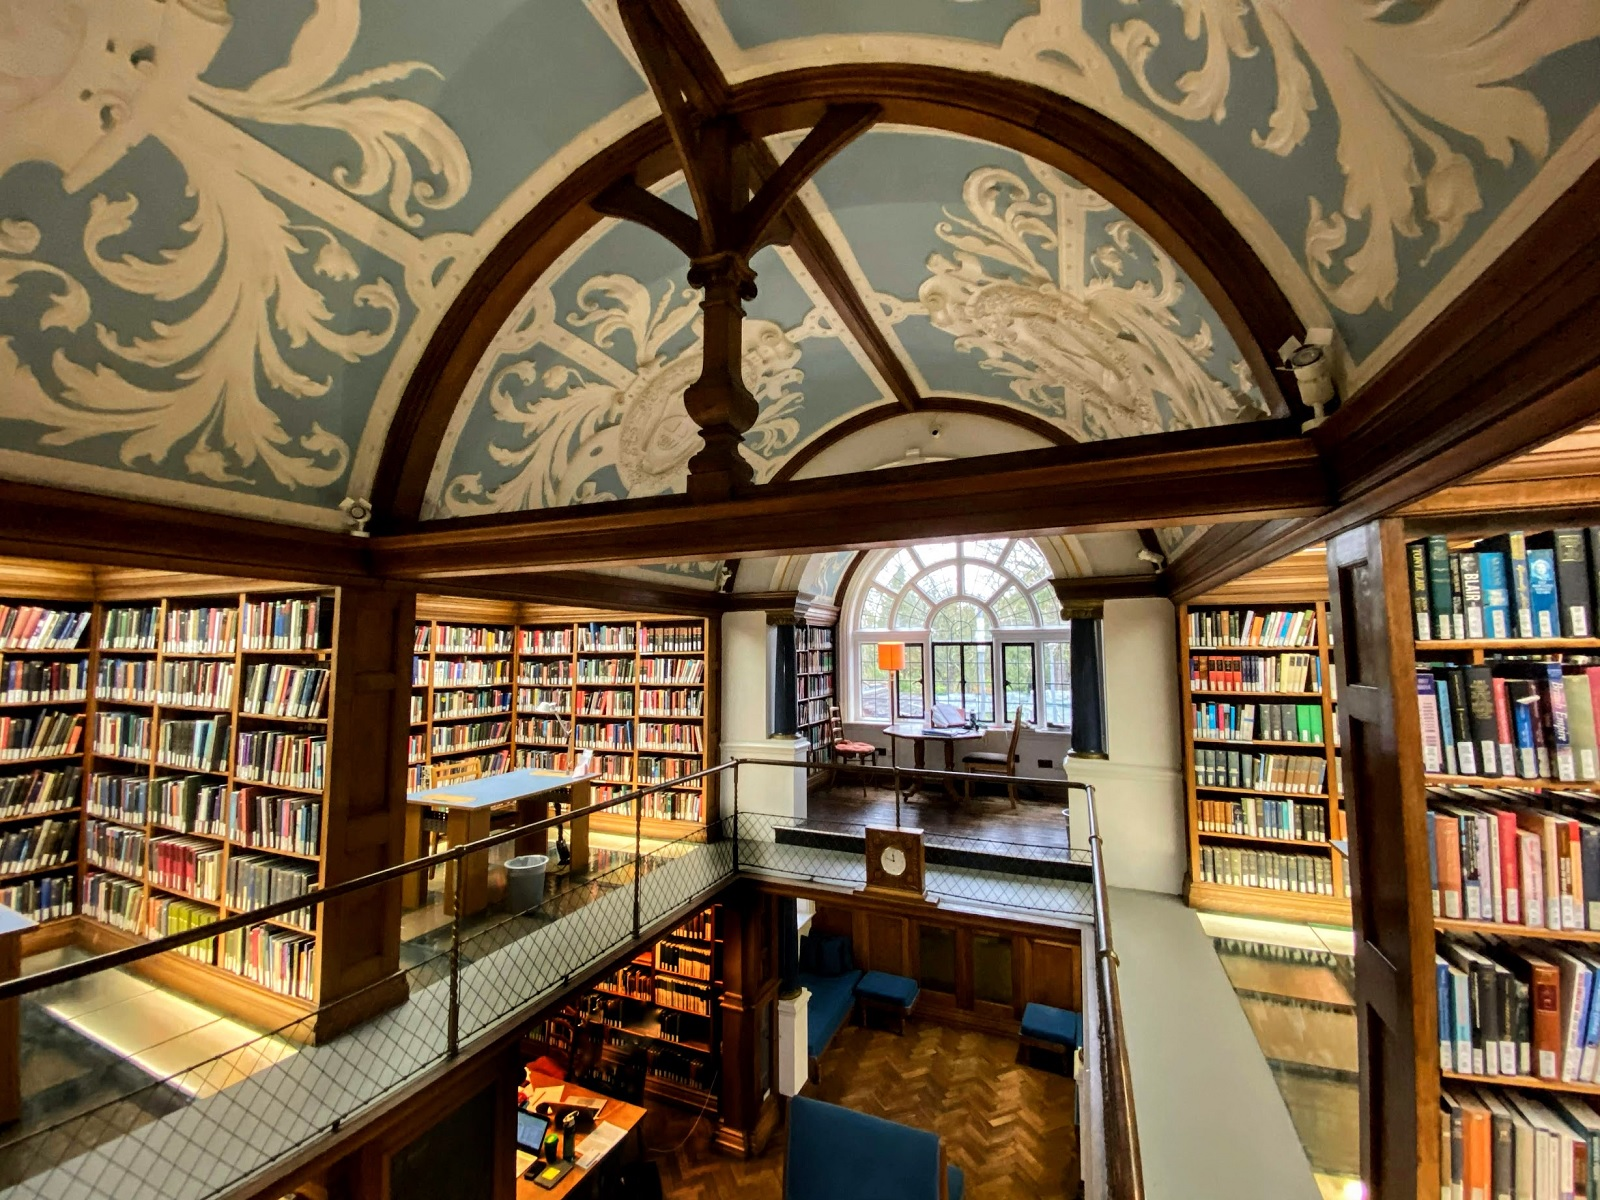 newnham college library cambridge u 01.jpg